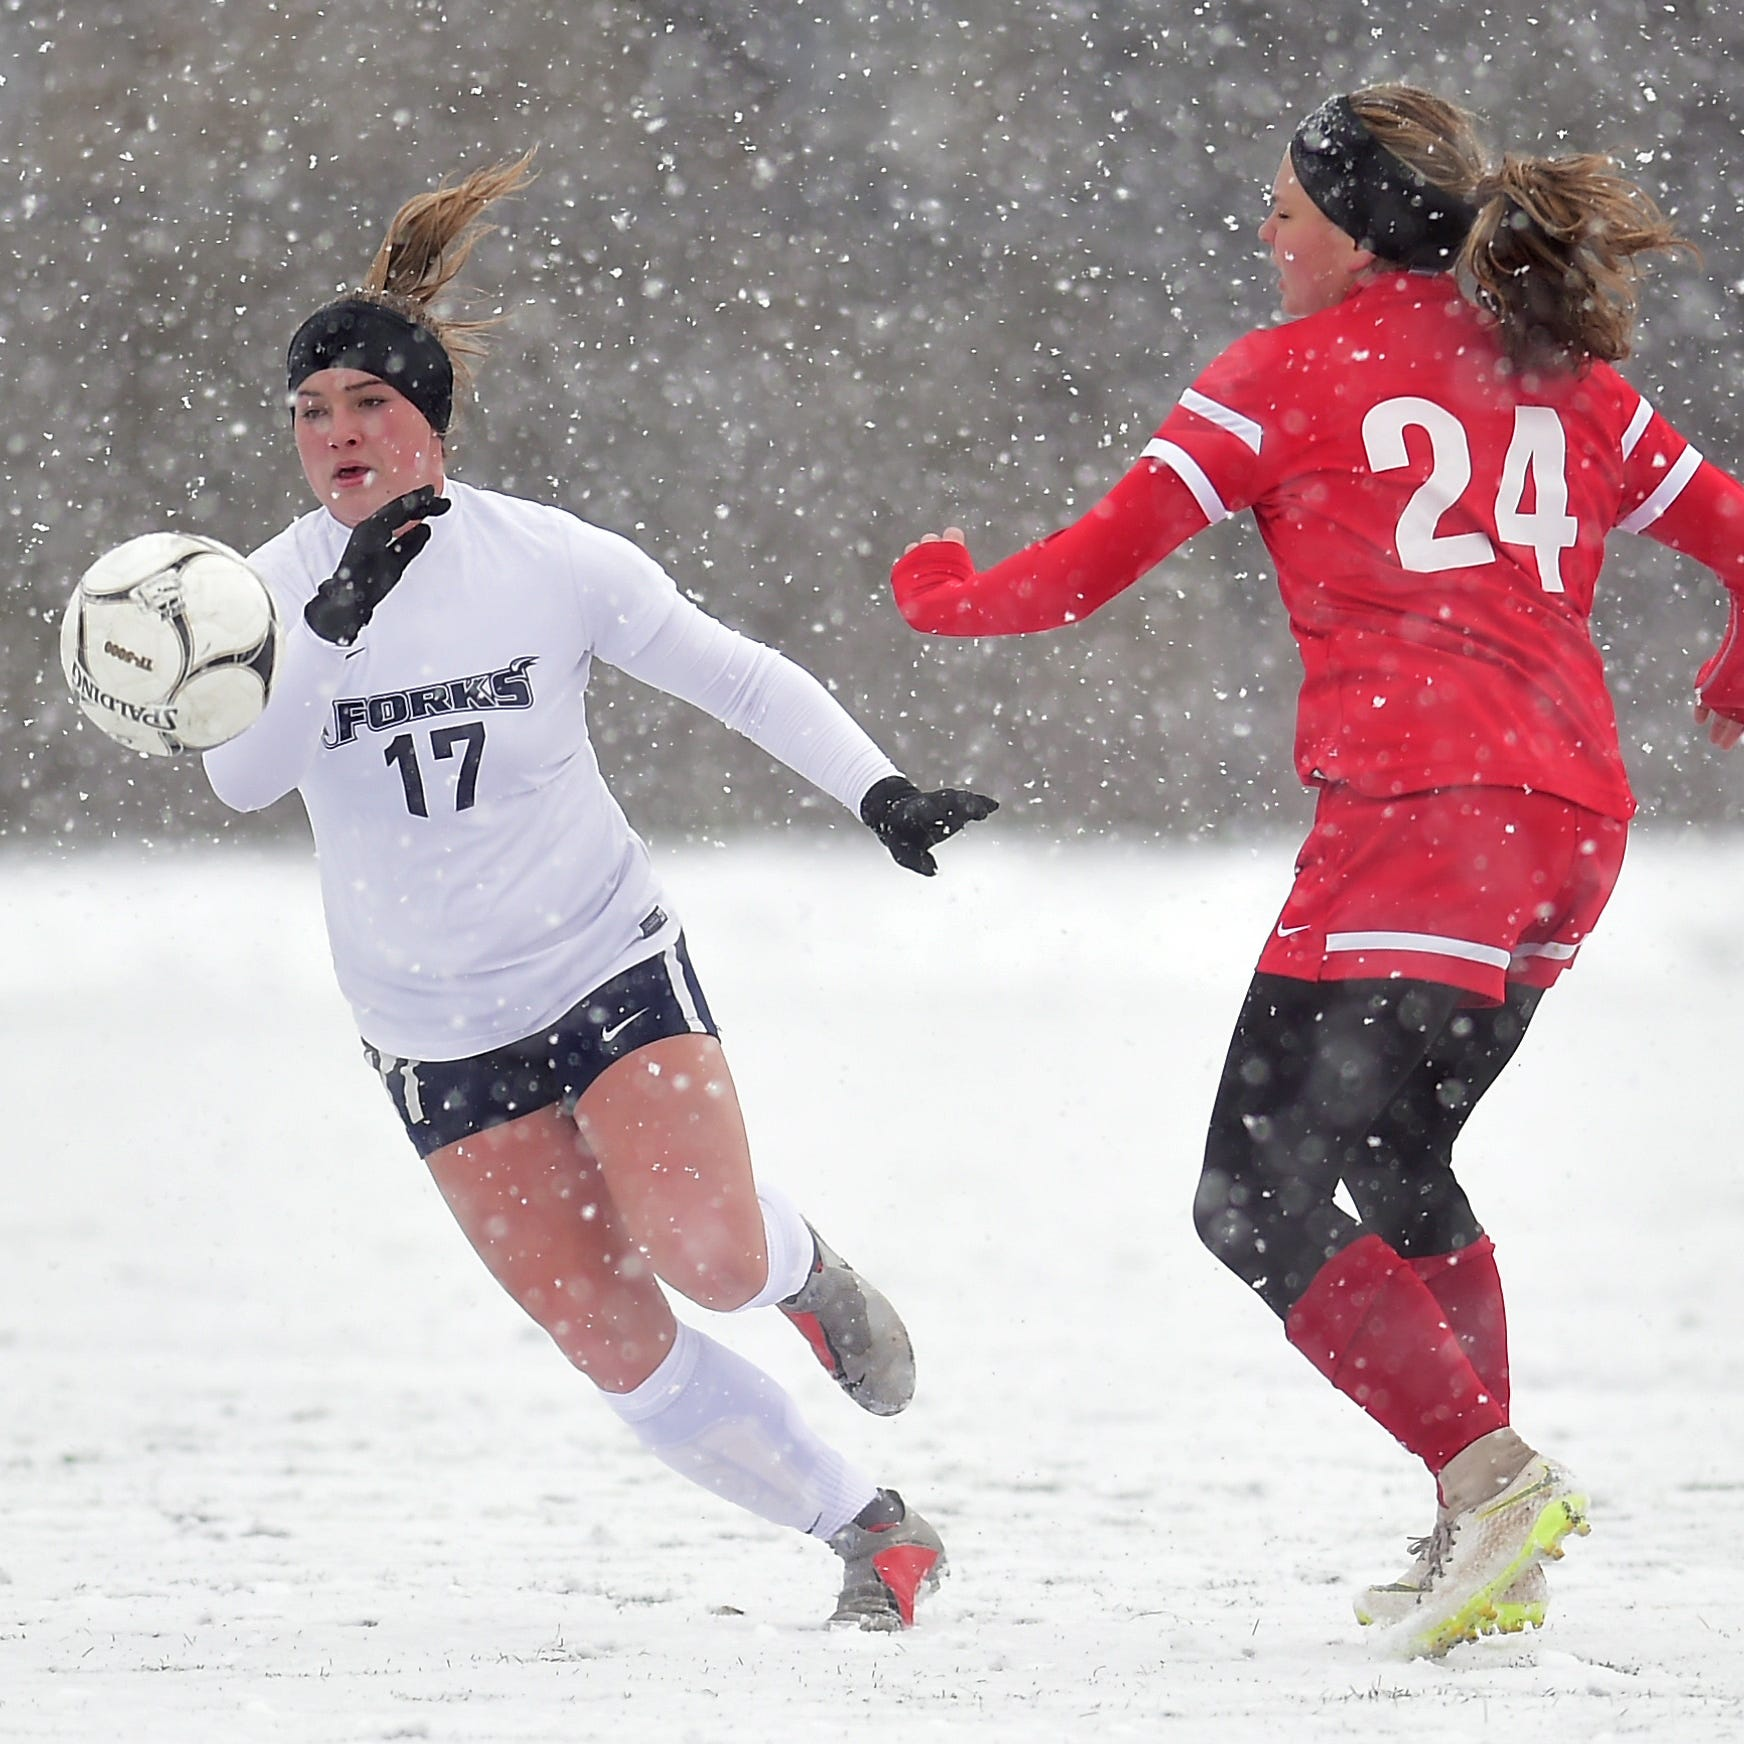 Girls soccer: Bough sisters lead Chenango Forks to Class B state semifinal victory